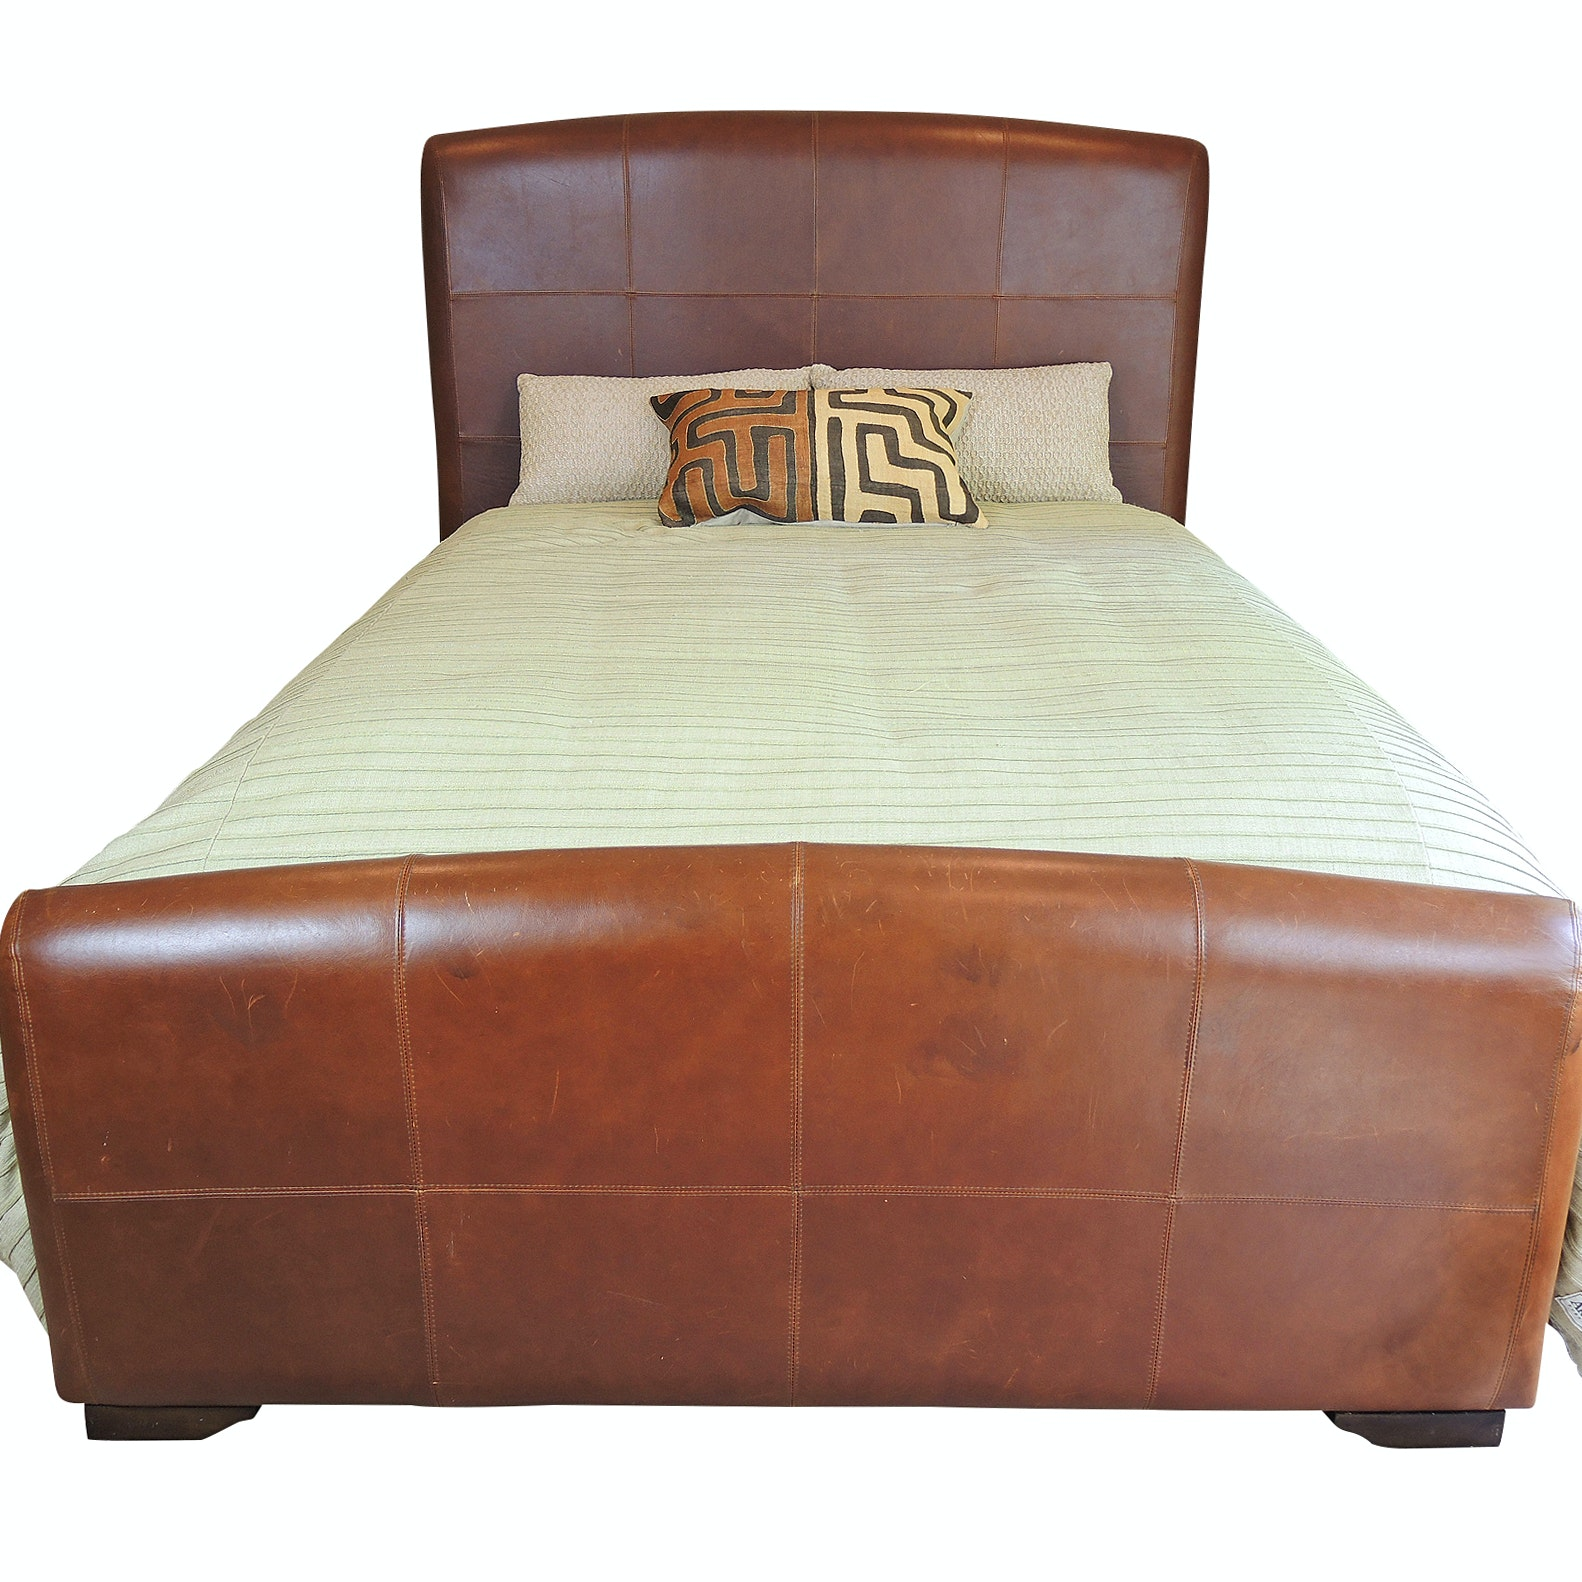 Stanley Furniture Queen Leather Headboard, Footboard and Side Rails